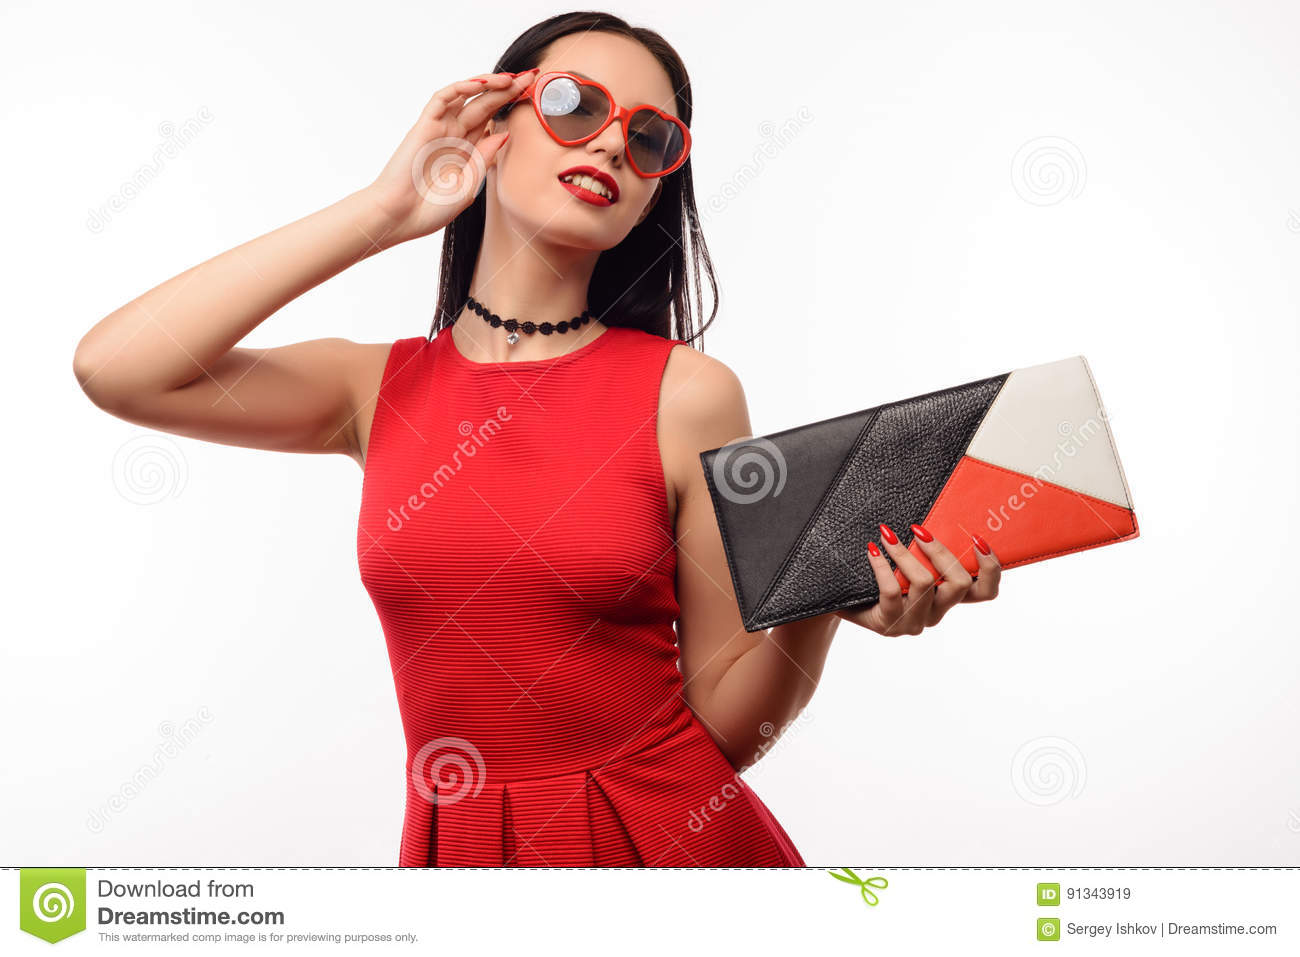 Stylish girl in red dress and clutch holds on to sunglasses in the shape of heart